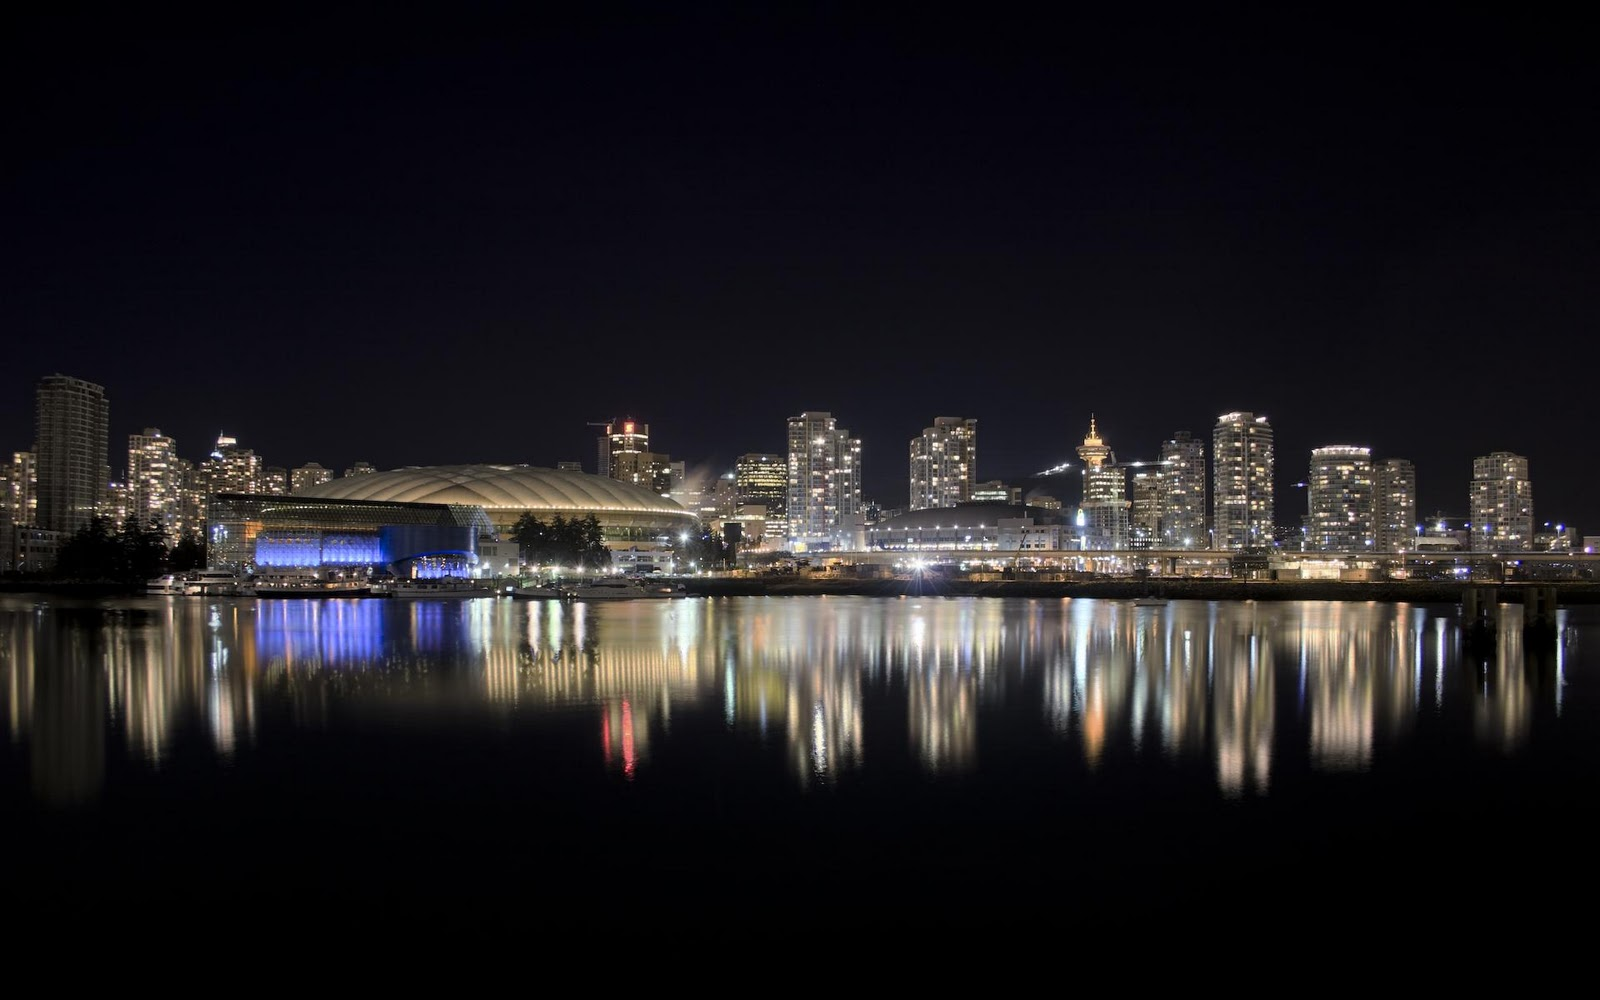 vancouver city nights wallpapers - Vancouver City Nights HDPiCorner